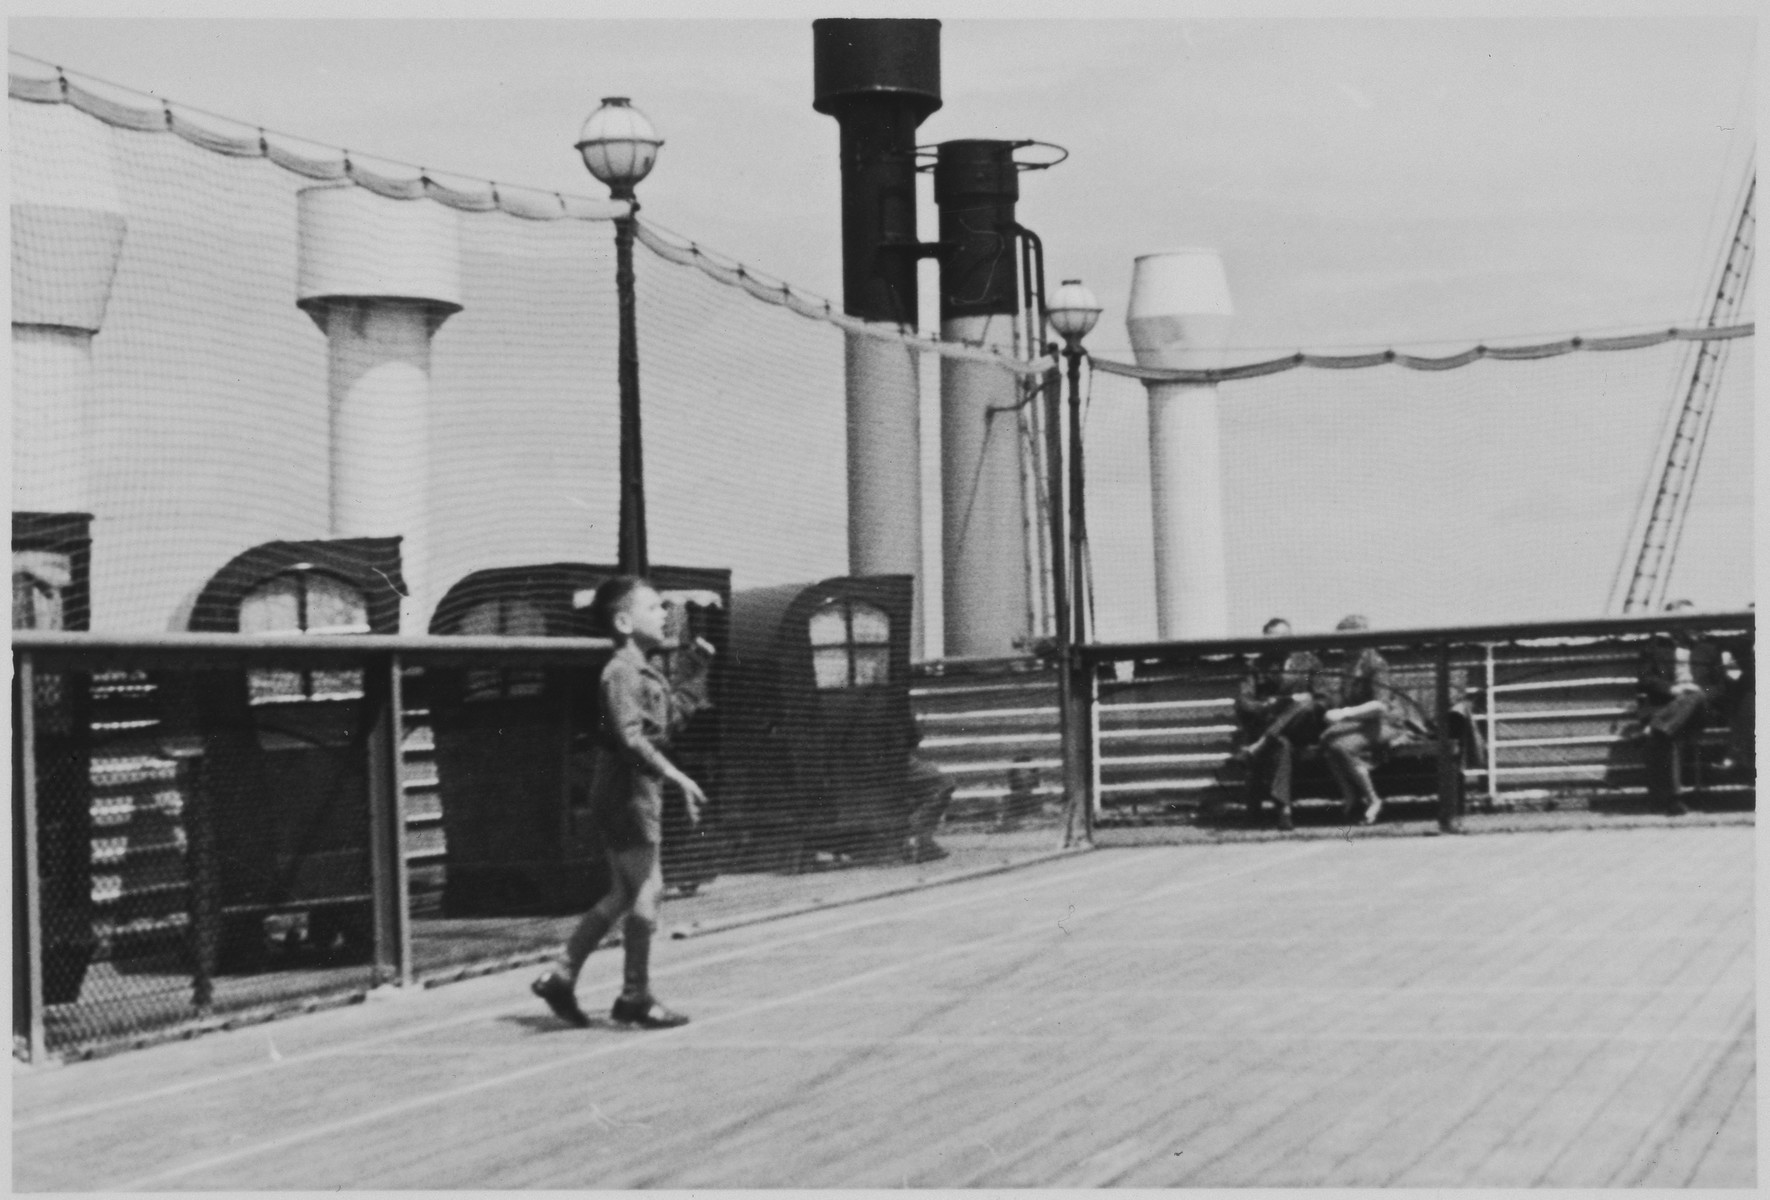 A Jewish refugee child plays on the deck of the MS St. Louis.